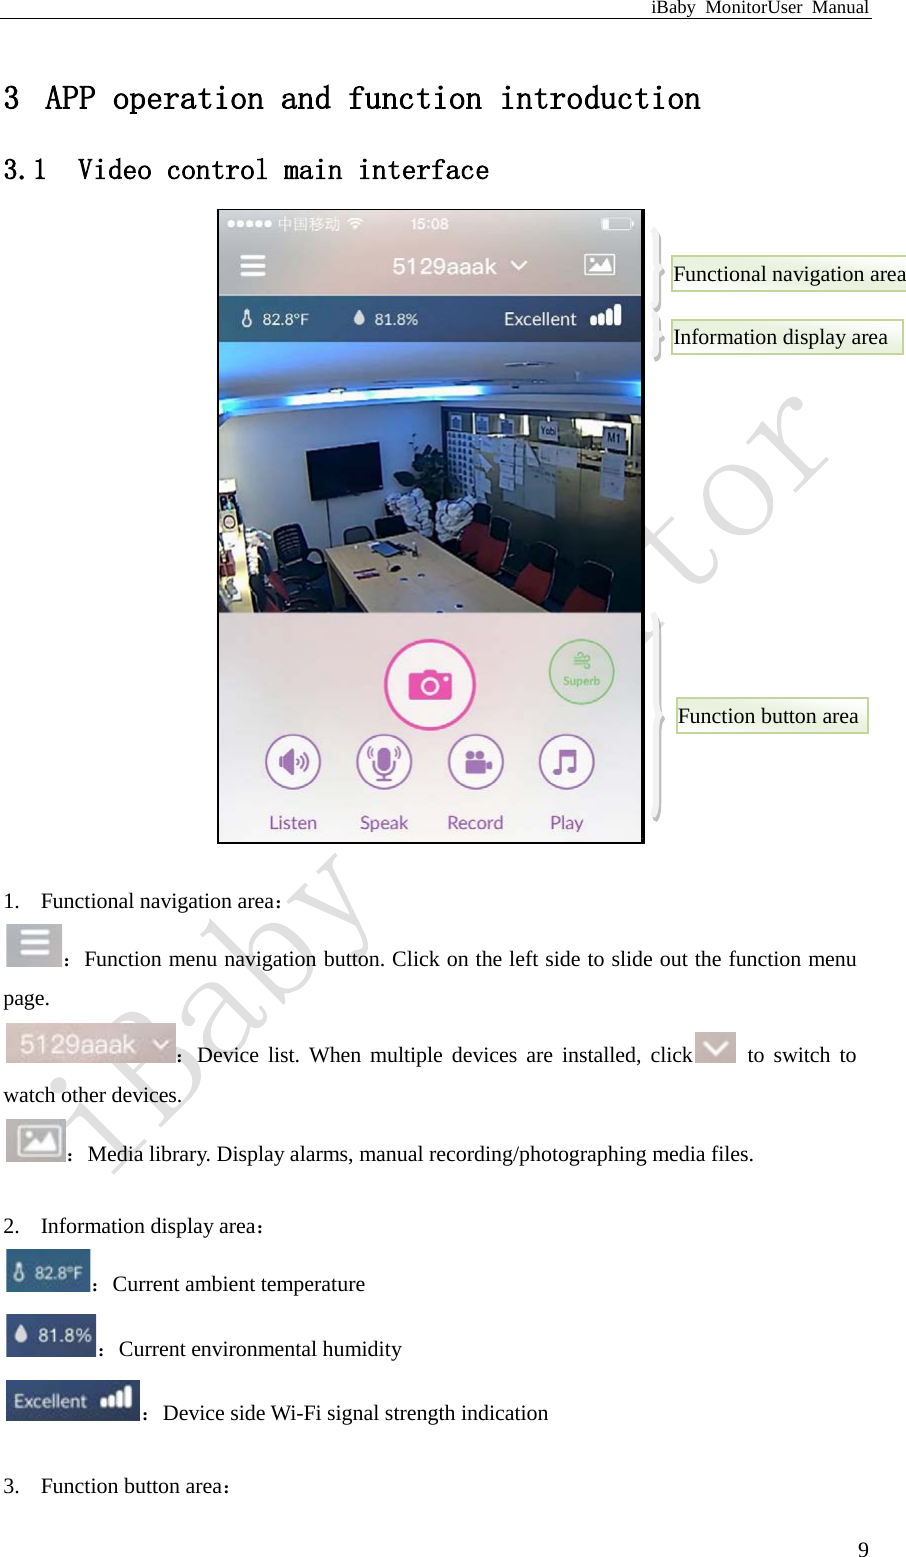 iBaby MonitorUser Manual  9 3 APP operation and function introduction 3.1 Video control main interface 收听:  1. Functional navigation area: :Function menu navigation button. Click on the left side to slide out the function menu page. :Device list. When multiple devices are installed, click  to switch to watch other devices. :Media library. Display alarms, manual recording/photographing media files.  2. Information display area: :Current ambient temperature :Current environmental humidity :Device side Wi-Fi signal strength indication  3. Function button area: Function button area Information display area Functional navigation area